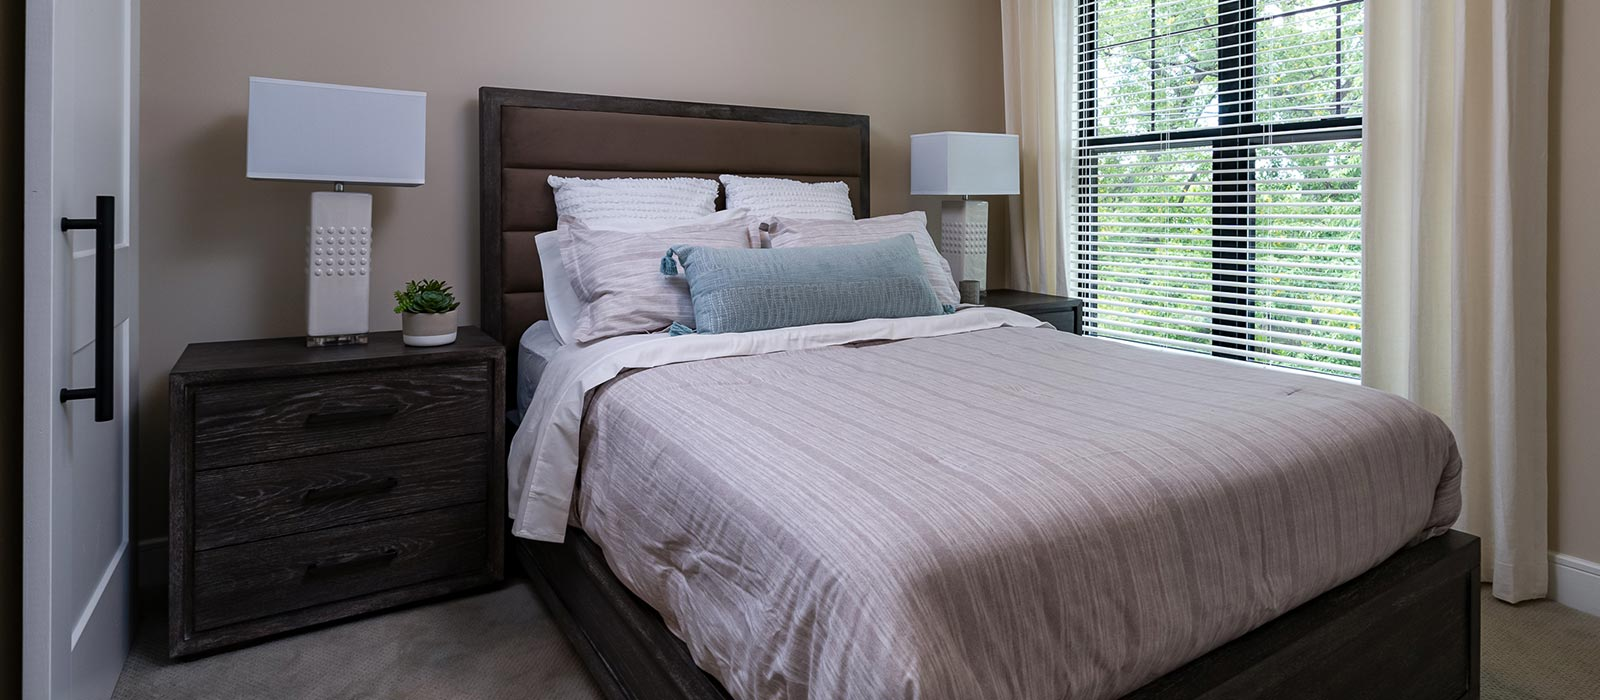 Modern bedroom with conformable bed and large window